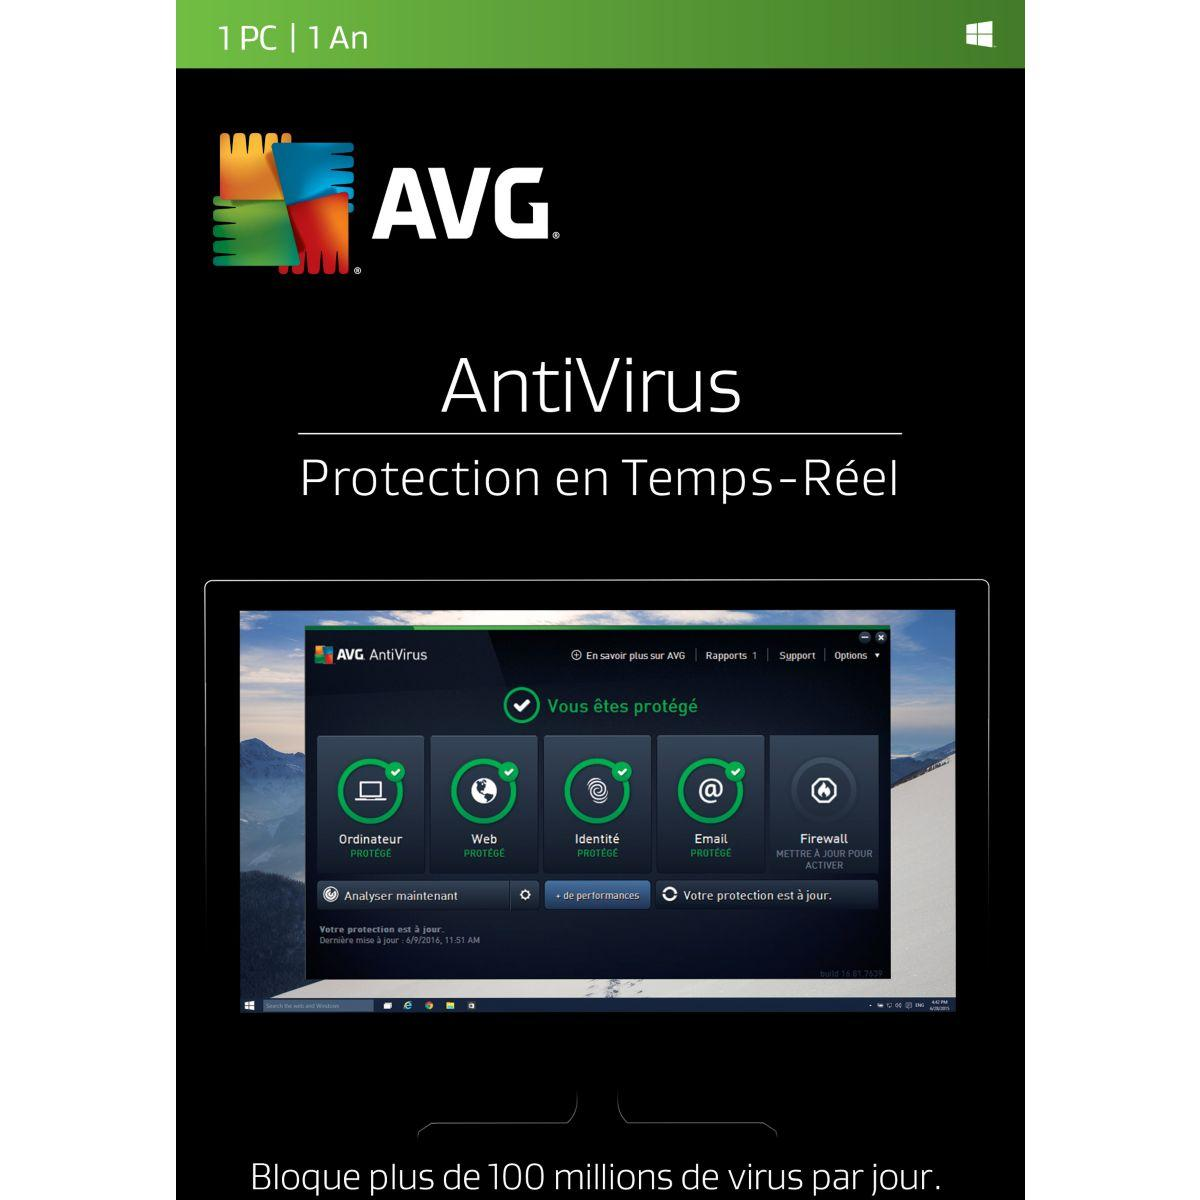 Logiciel pc avg antivirus (1 pc 1 an) (photo)